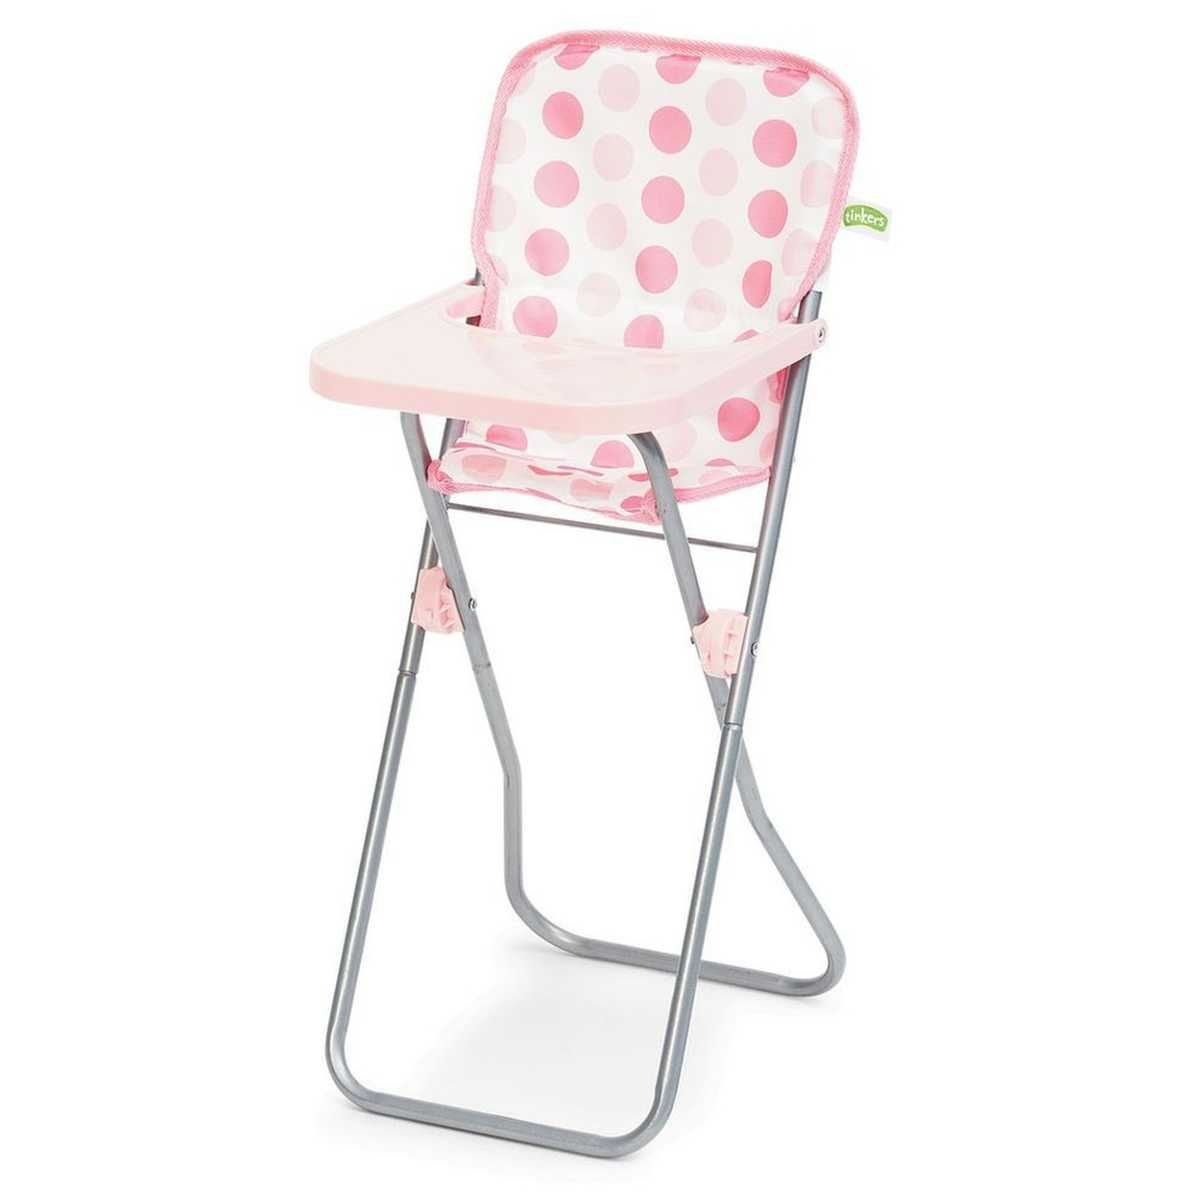 Exceptional Tinkers Doll High Chair